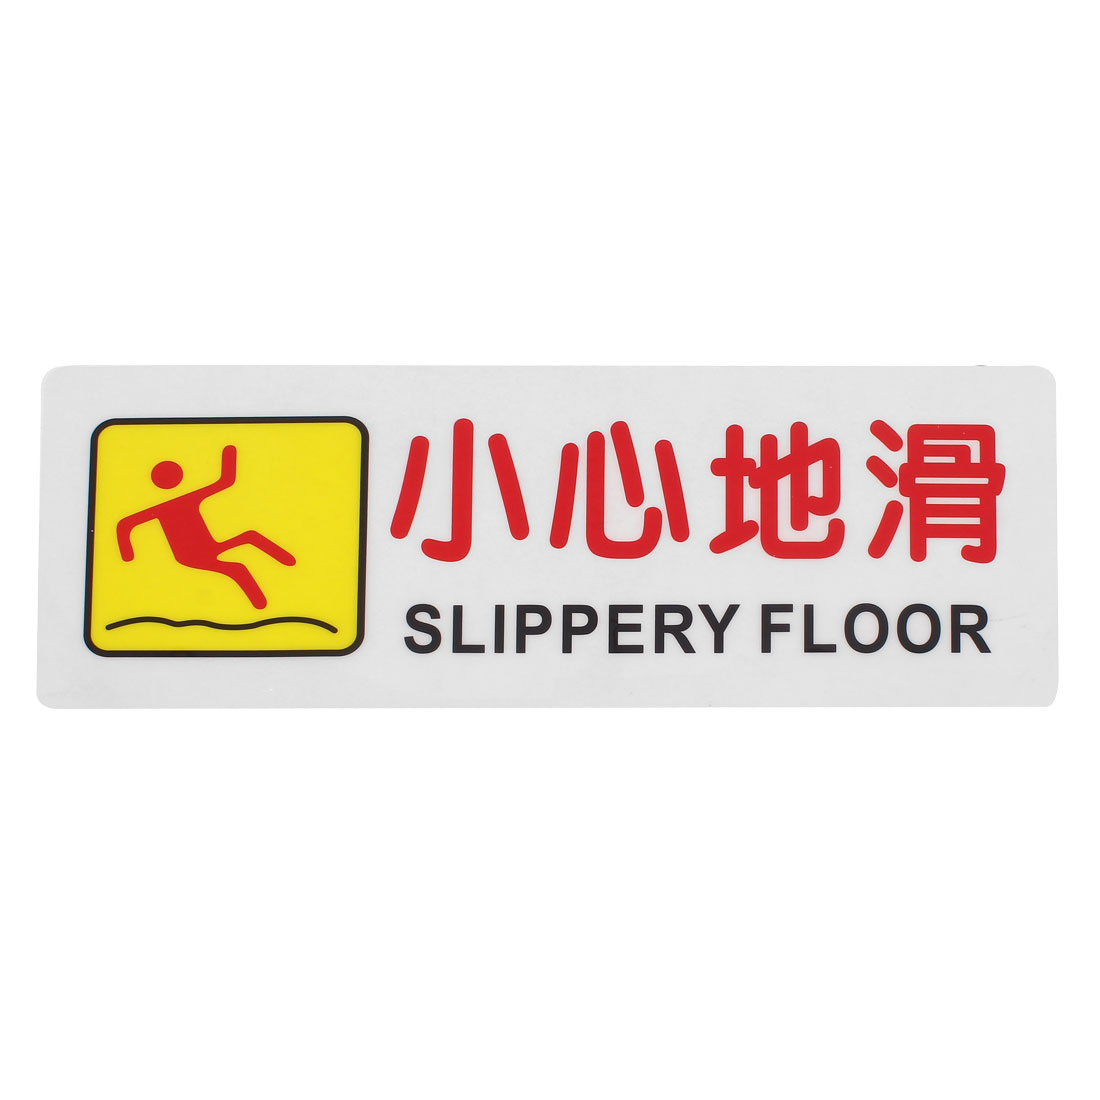 Toilet Plastic Slippery Floor Sign Self Adhesive Wall Window Sticker Warning Caution Notice Decal